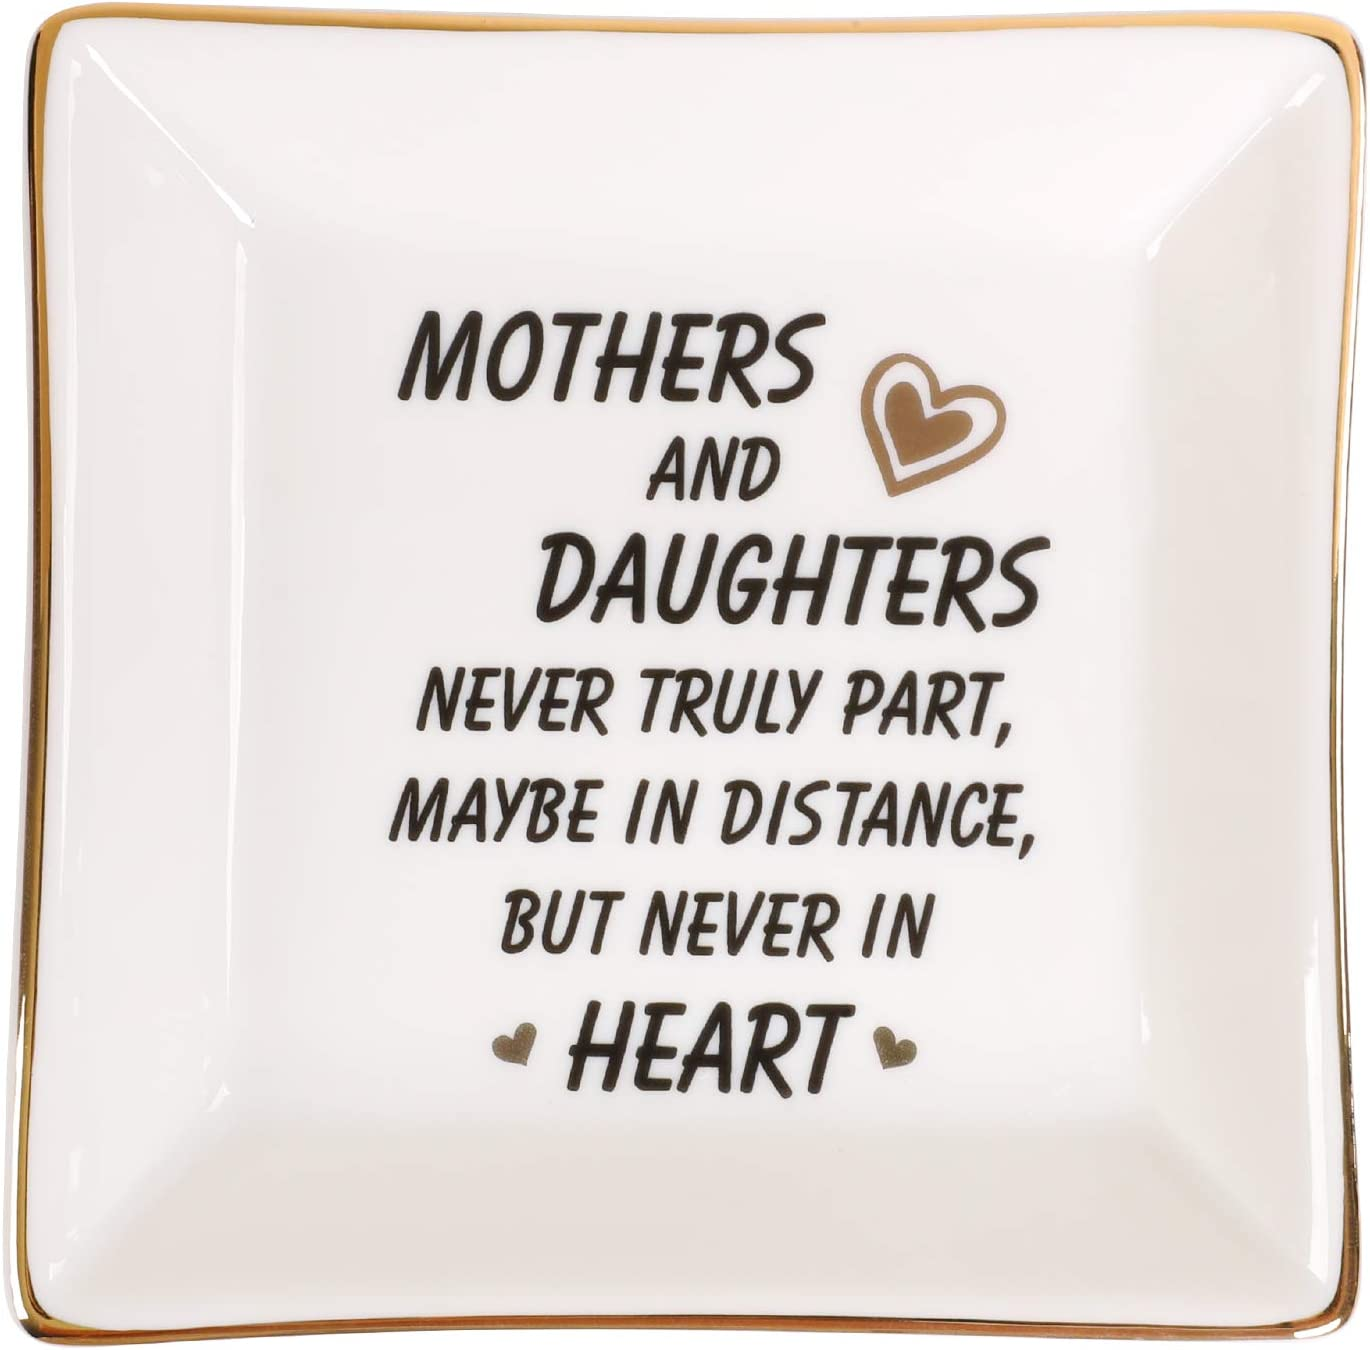 EVEREST GOOSE Mother Gifts Trinket Dish - Ceramic Ring Dish Decorative Trinket Plate - Best Birthday Gifts for Mom - Mothers and Daughters Never Truly Apart, Maybe in Distance But Never in Heart